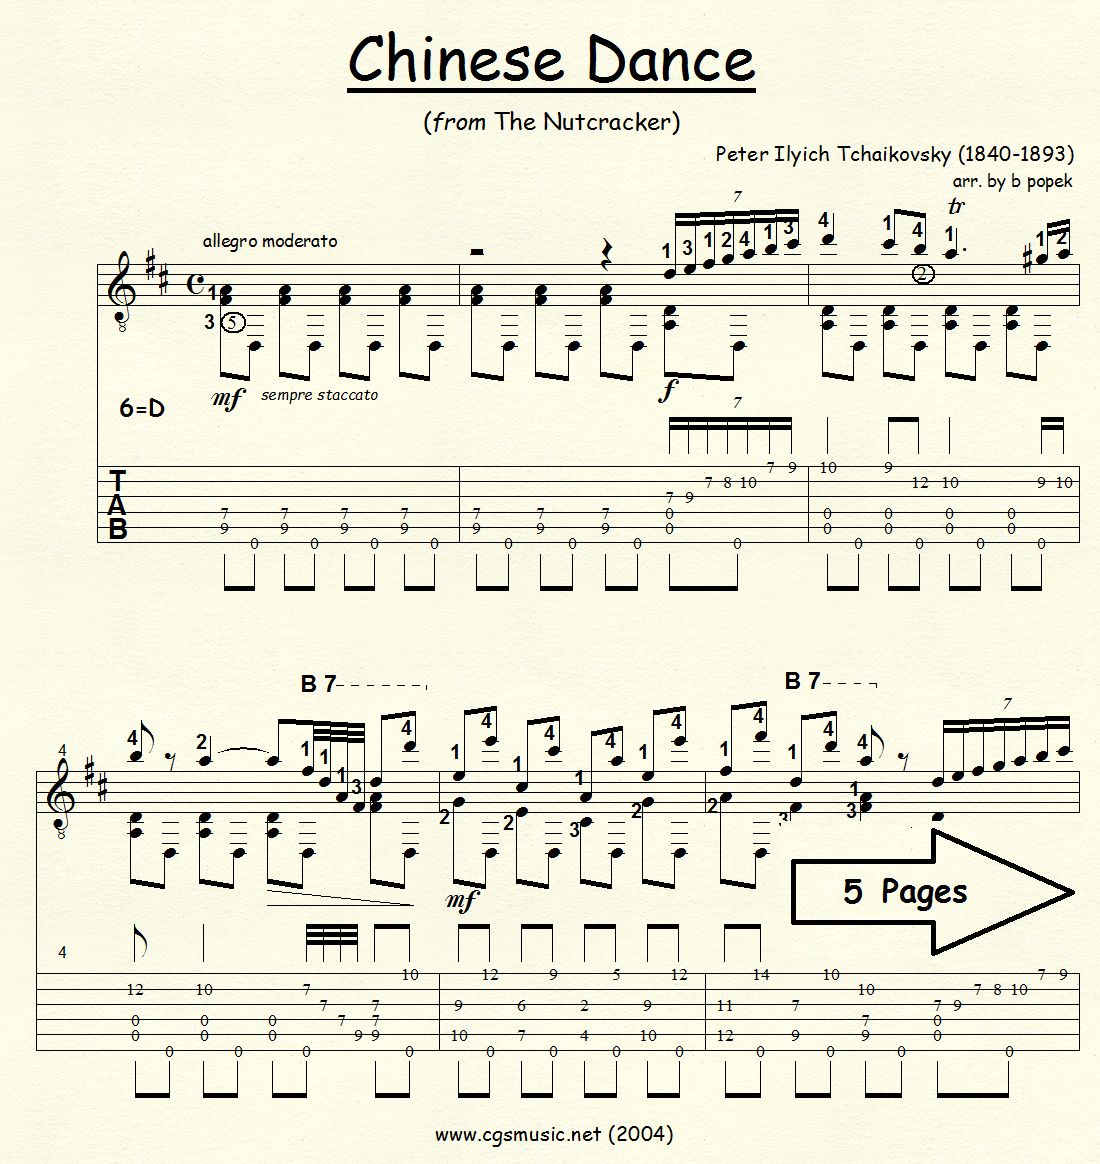 Chinese Dance (Tchaikovsky) from The Nutcracker Suite for Classical Guitar in Tablature